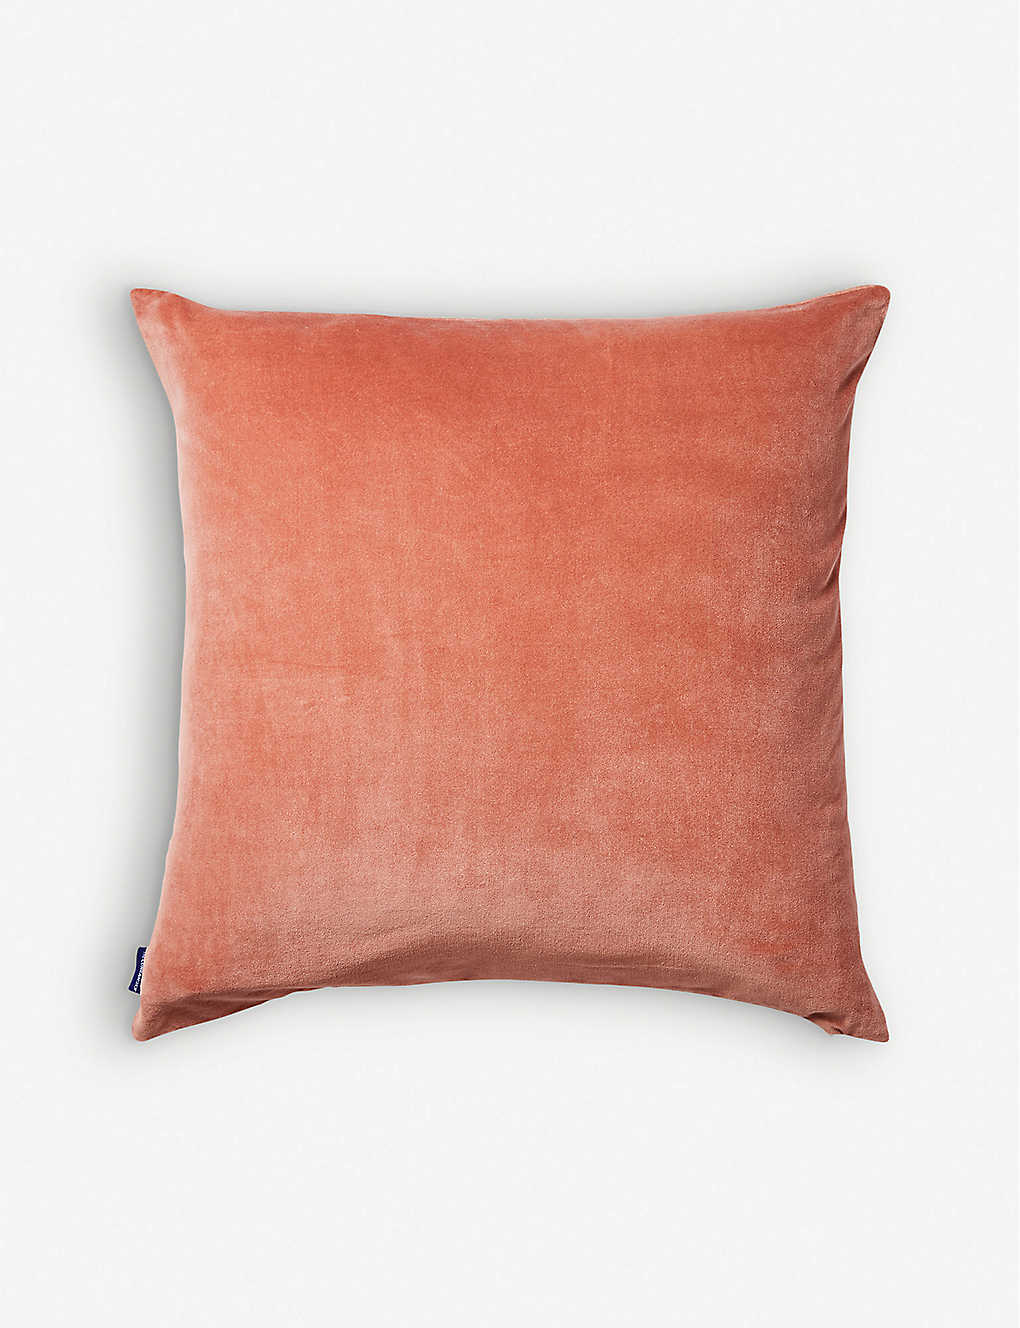 THE CONRAN SHOP: Cotton-velvet cushion 50cm x 50cm